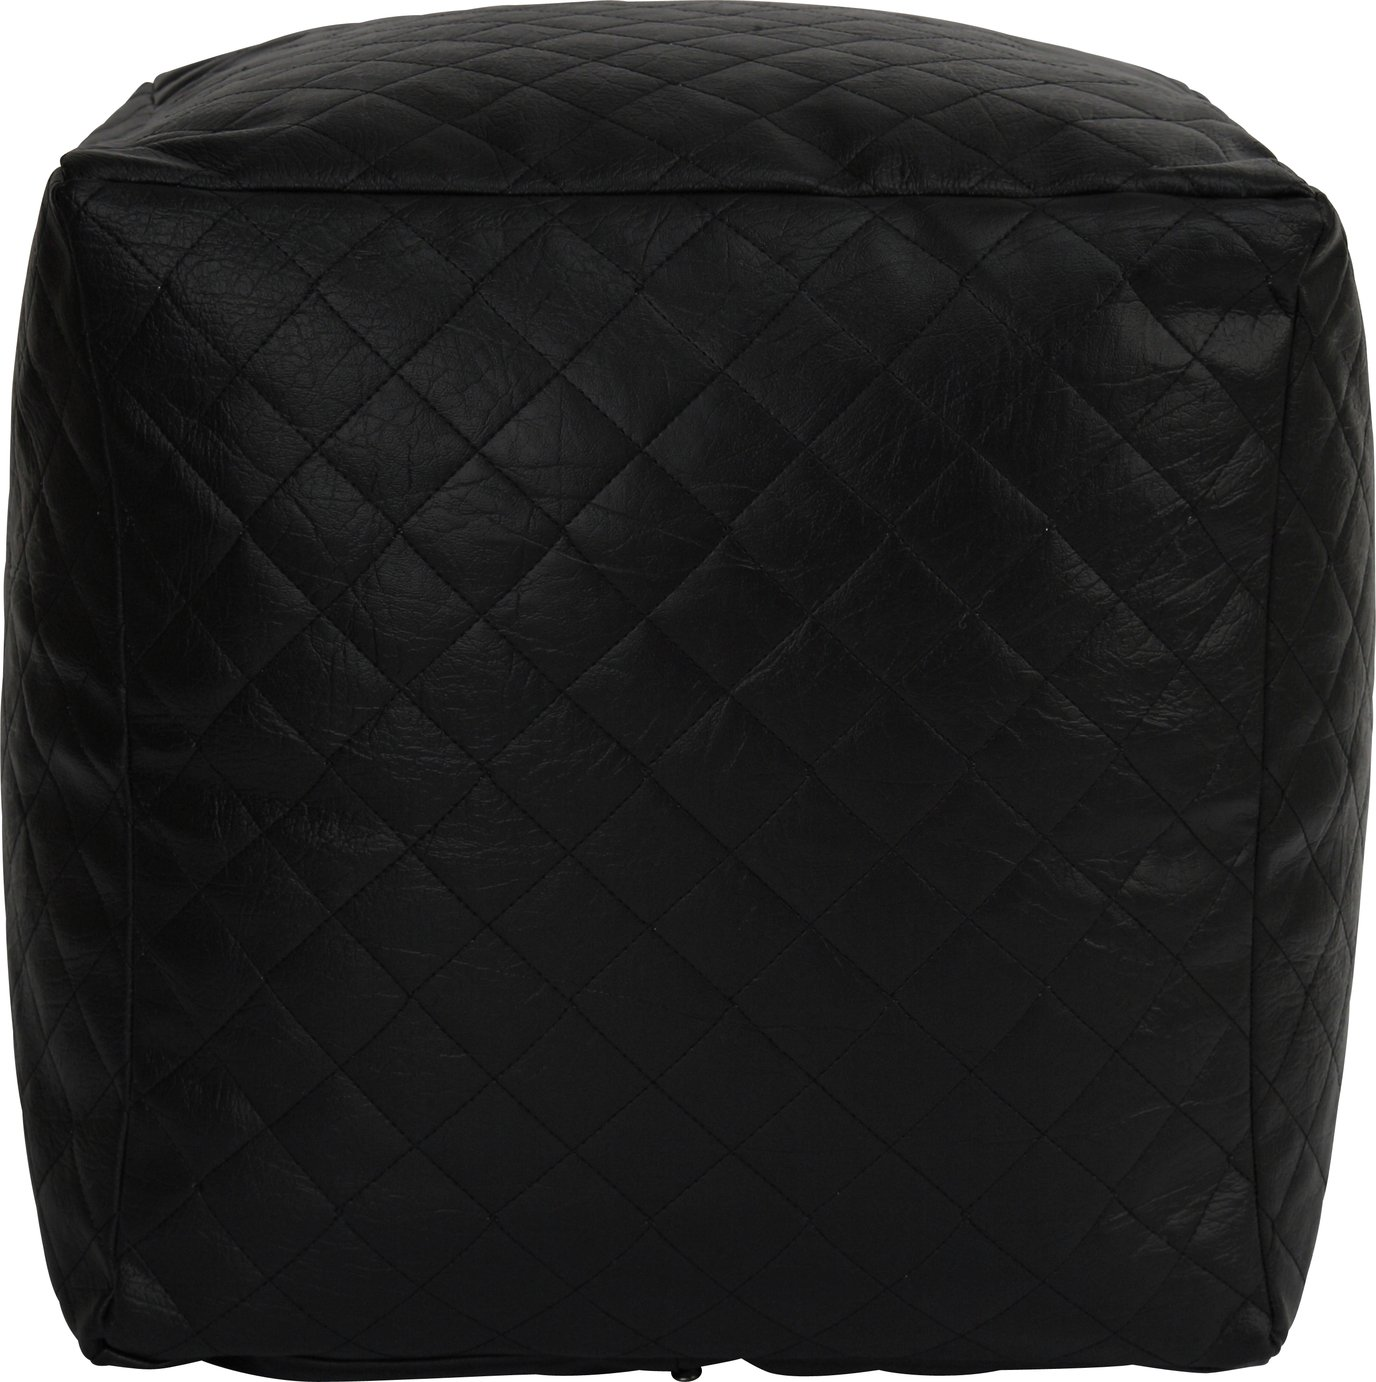 Argos Home Quilted Cube Beanbag - Black